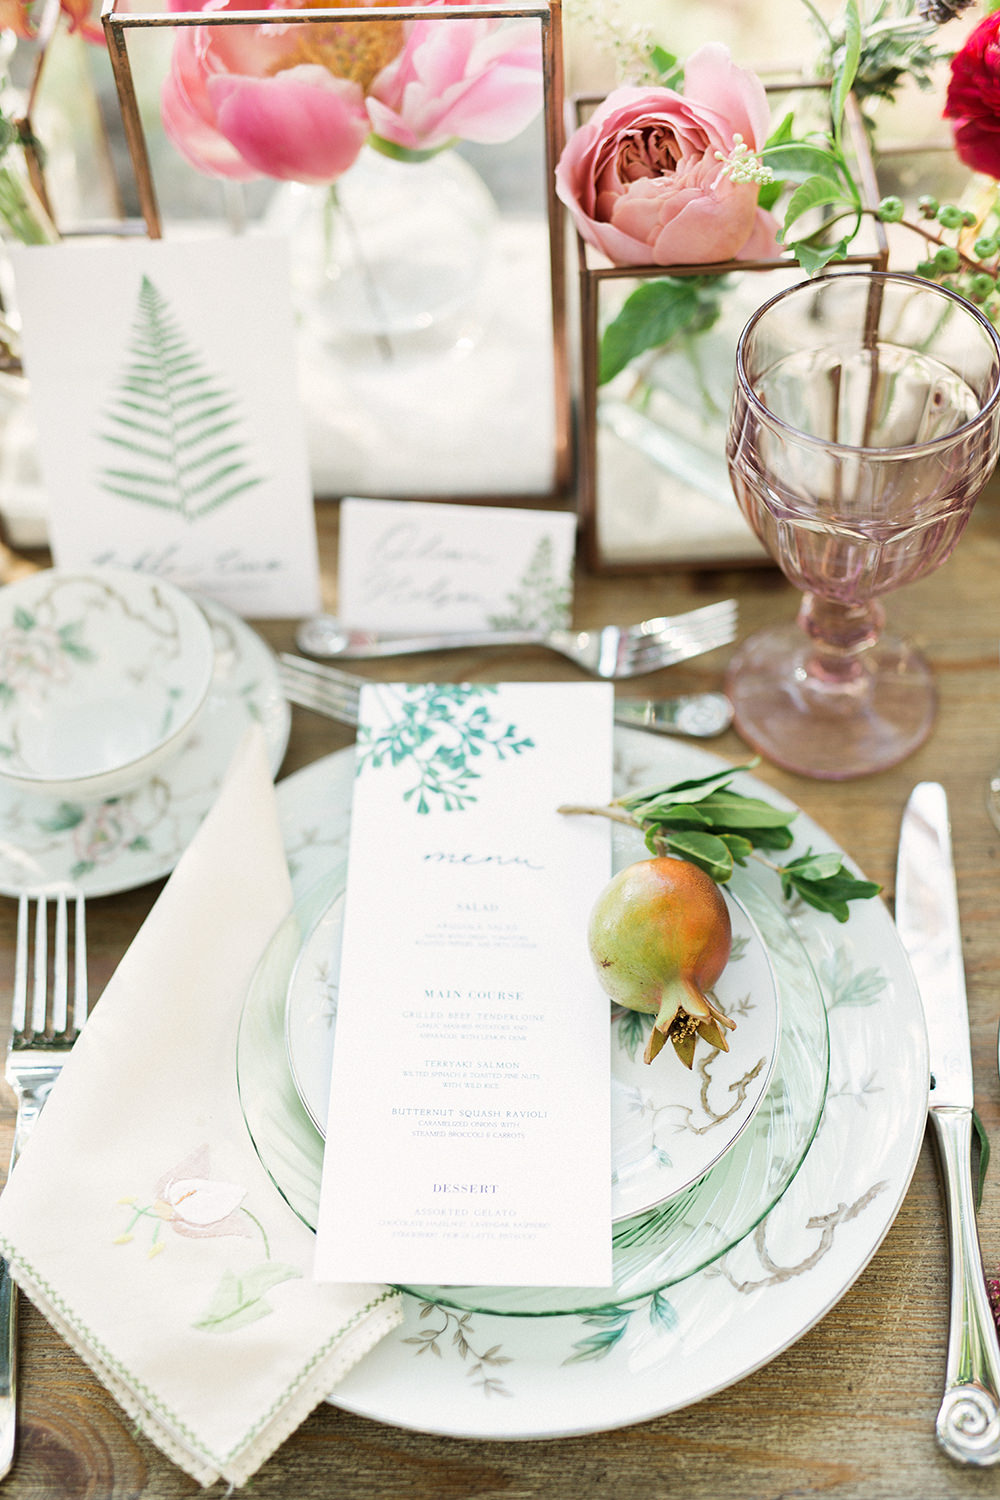 wedding place settings - photo by Gideon Photography http://ruffledblog.com/botanical-wedding-ideas-in-the-mountains-of-southern-utah